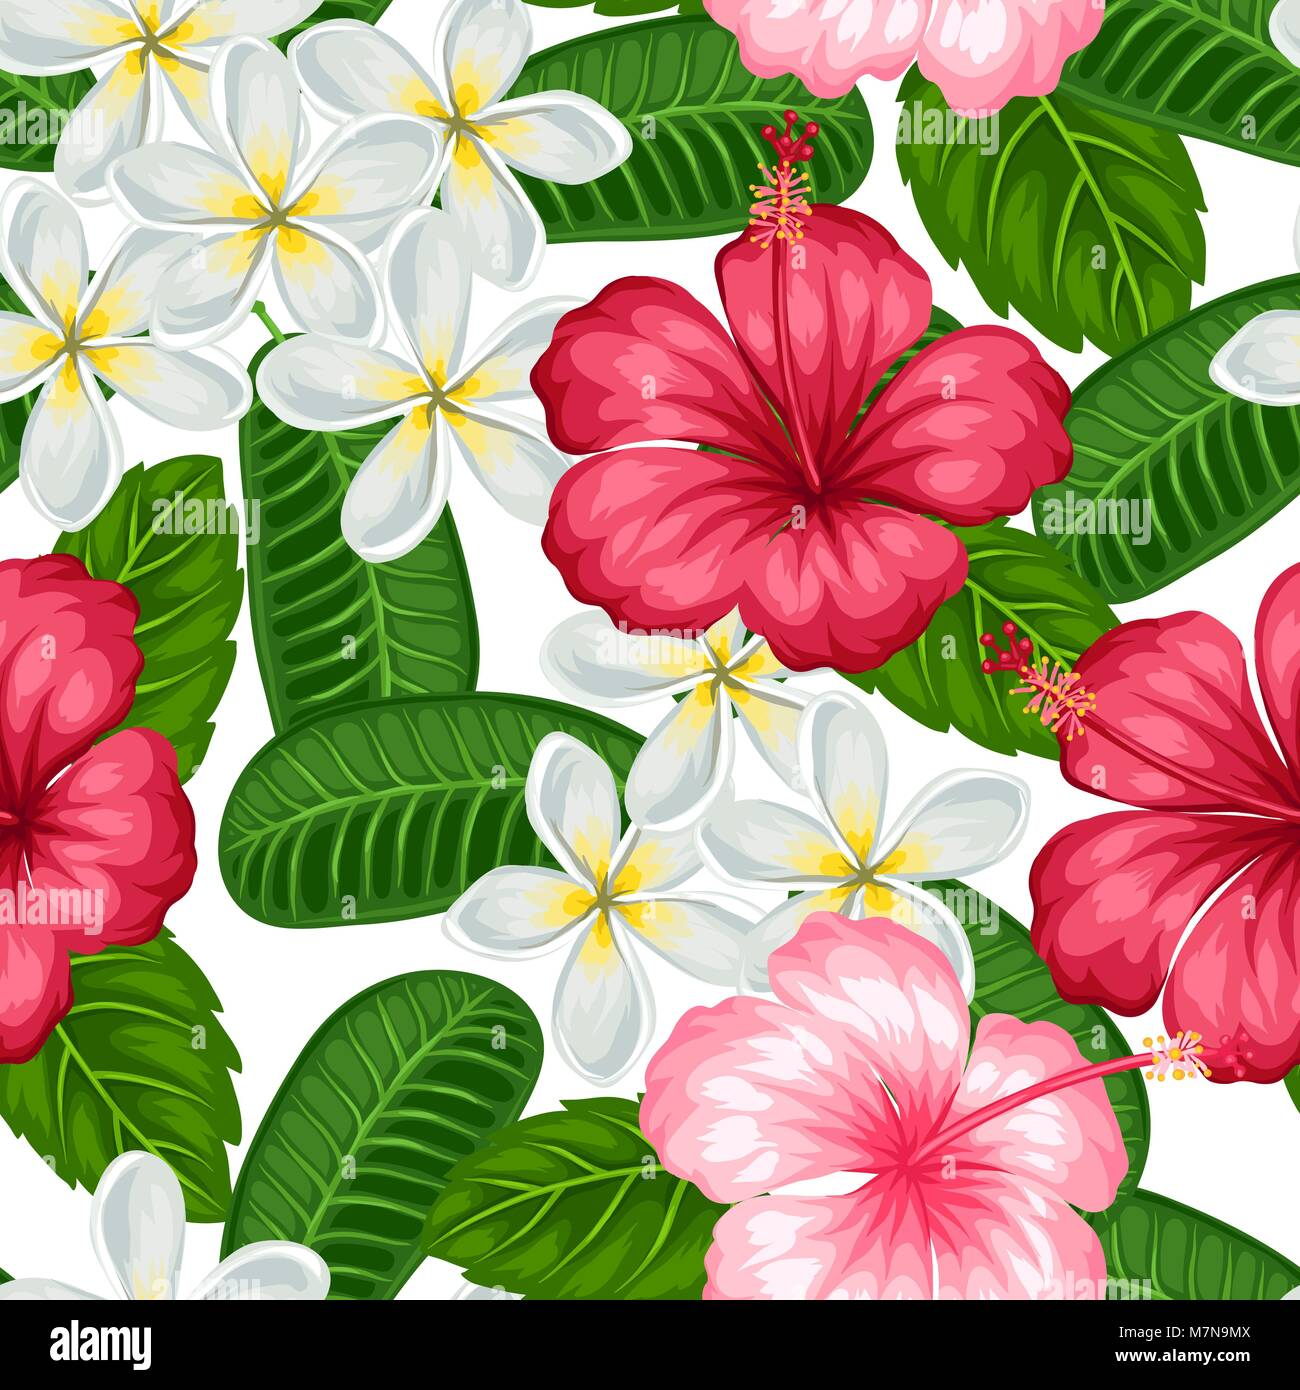 Seamless Pattern With Tropical Flowers Hibiscus And Plumeria Stock